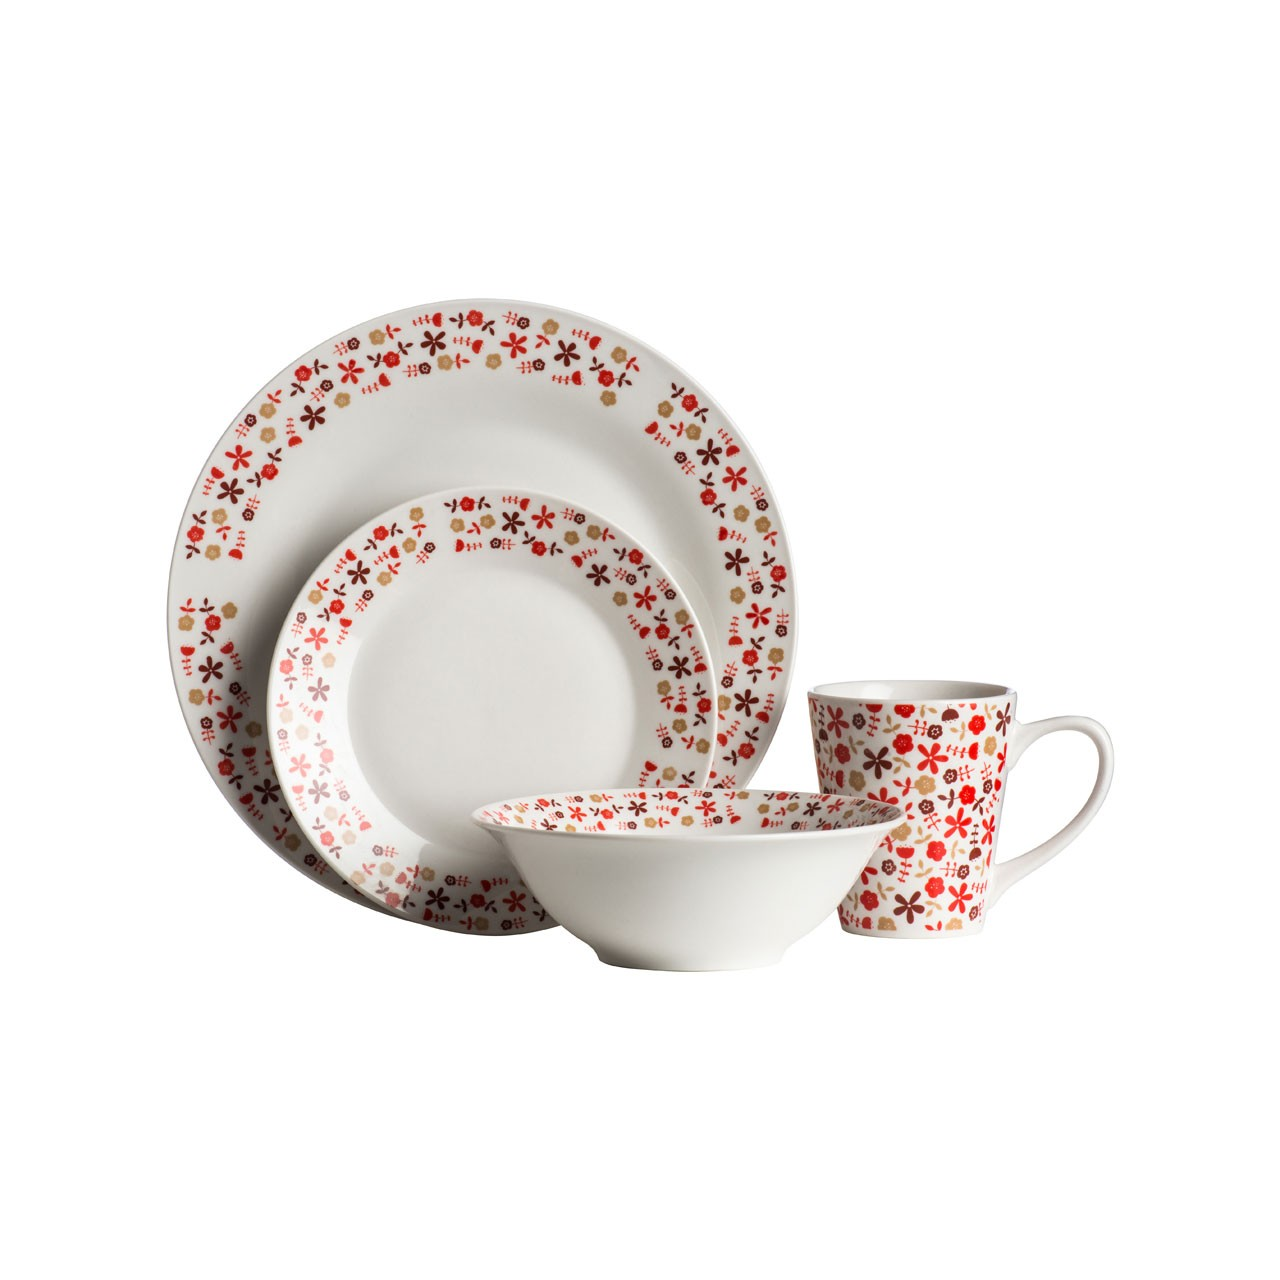 16 Piece Red Daisy Flower Porcelain Dinner Set